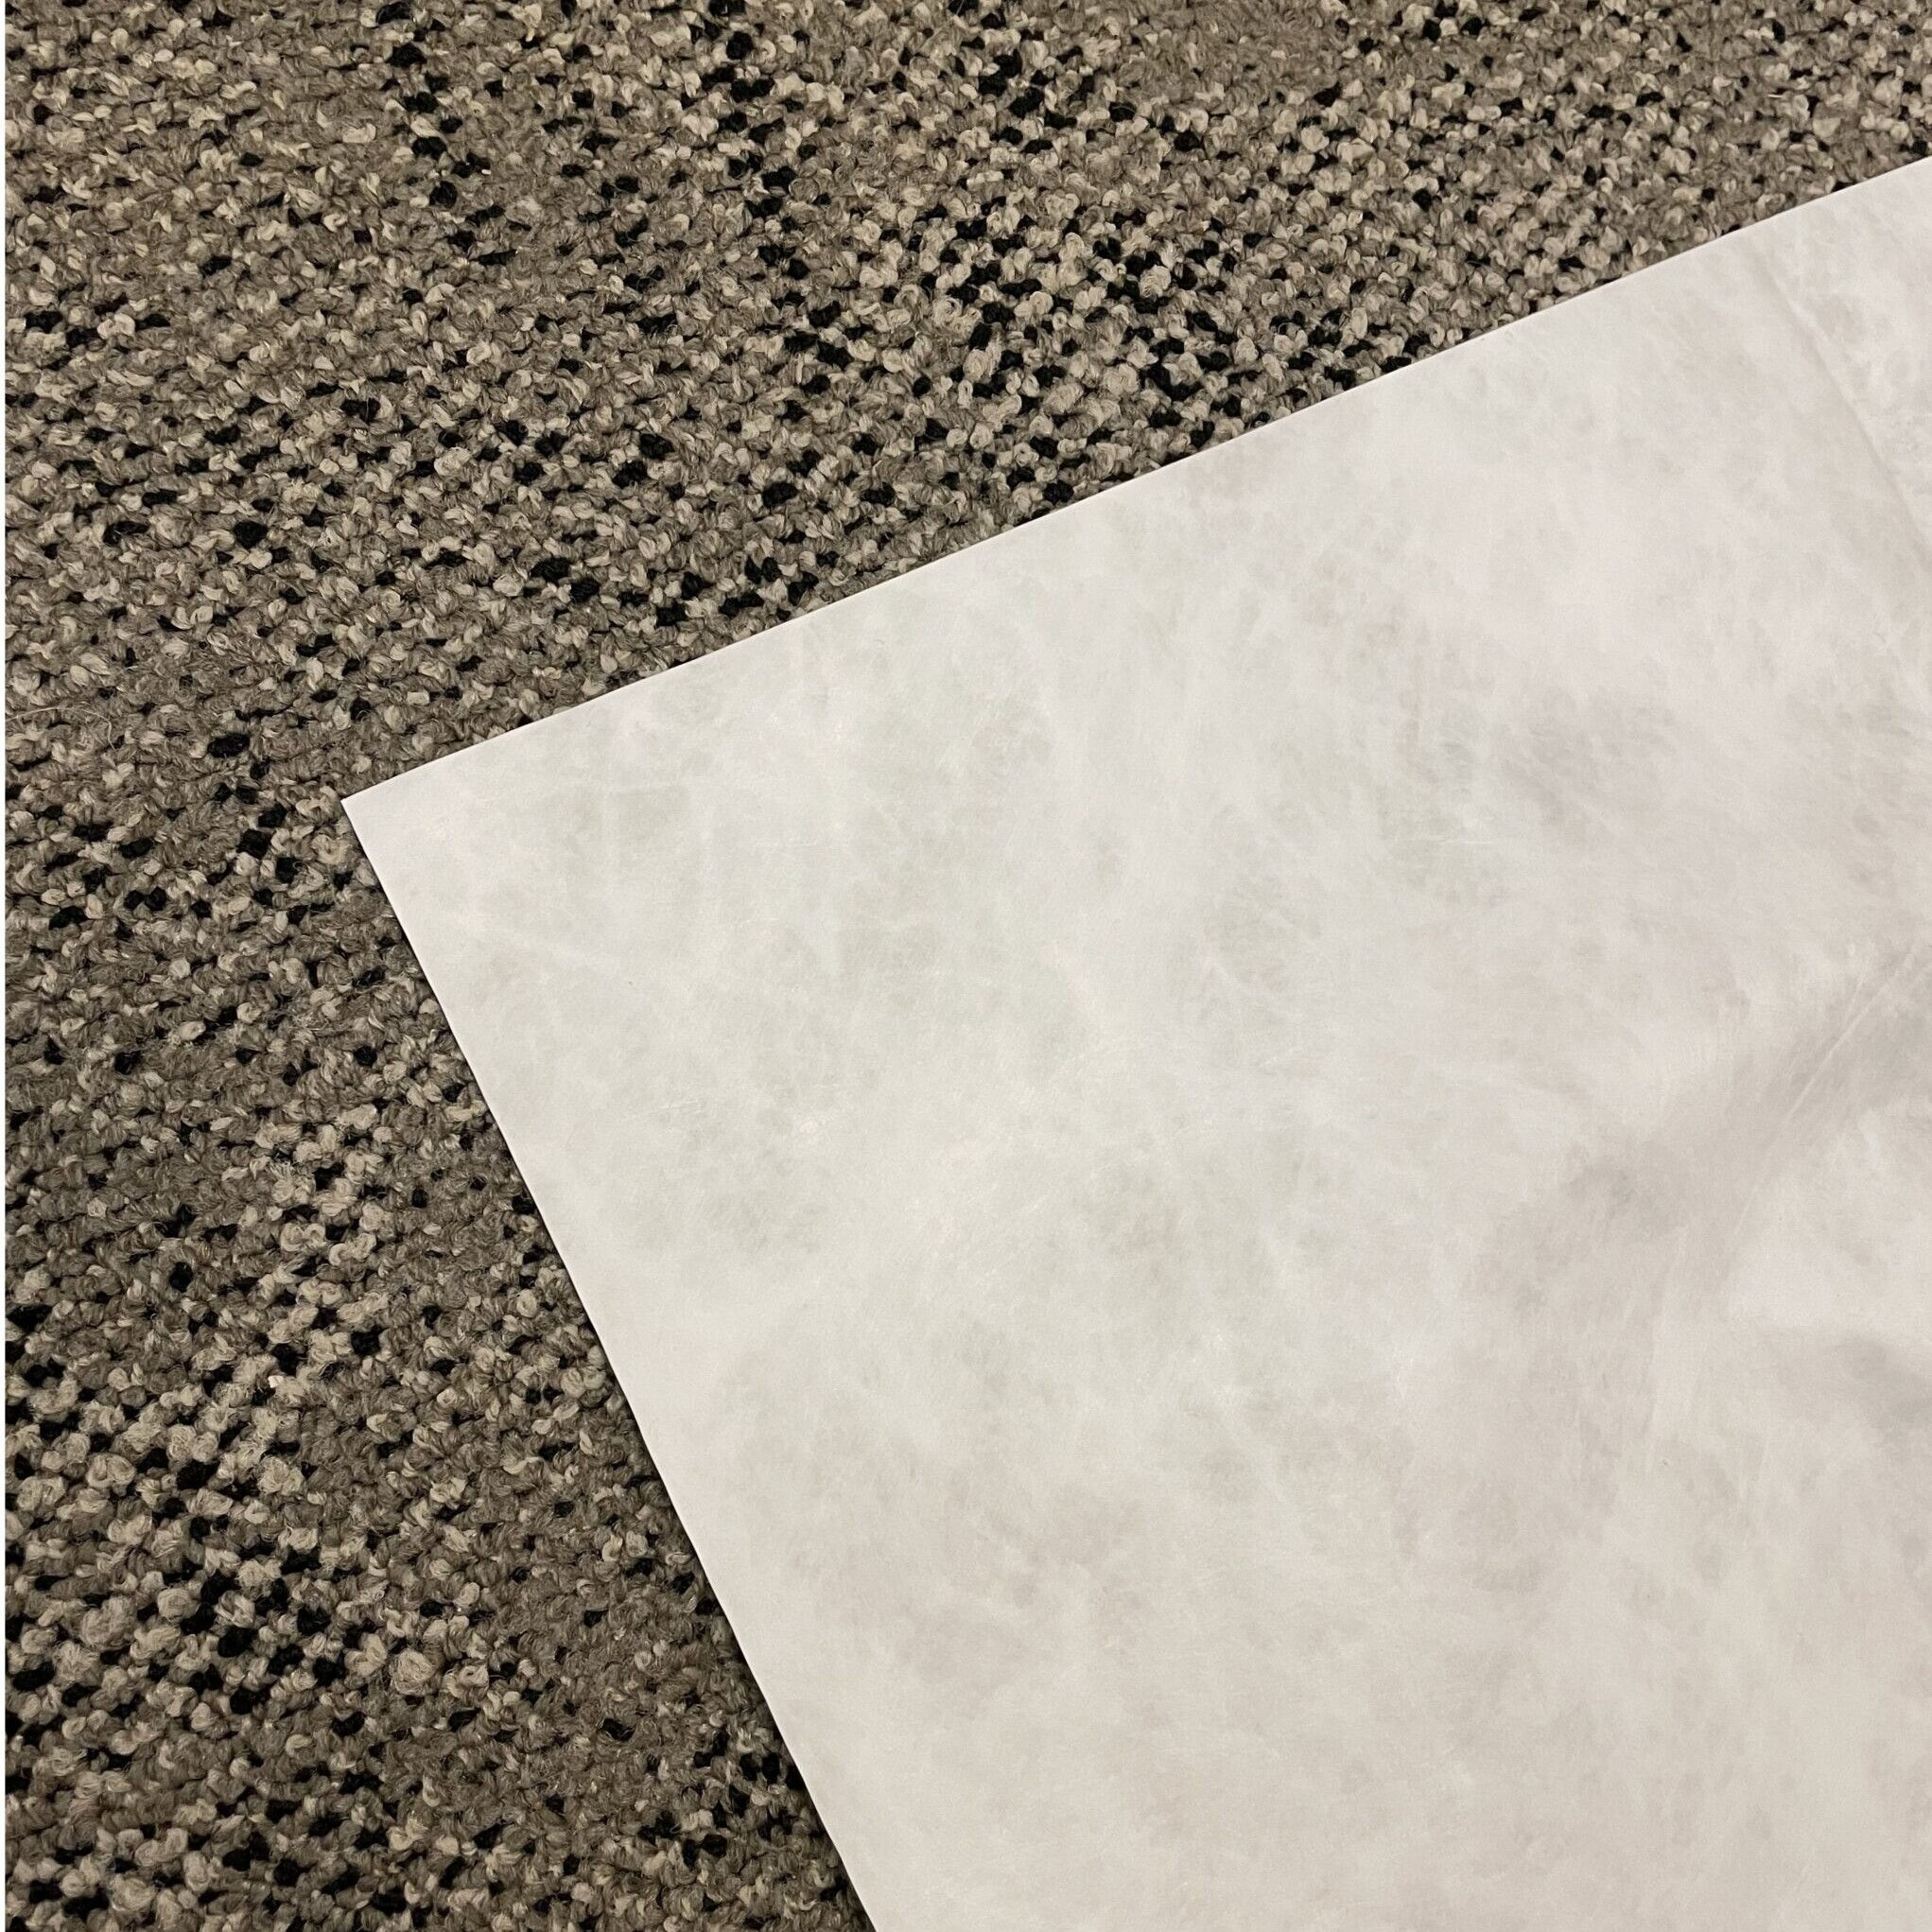 a thin sheet of paper